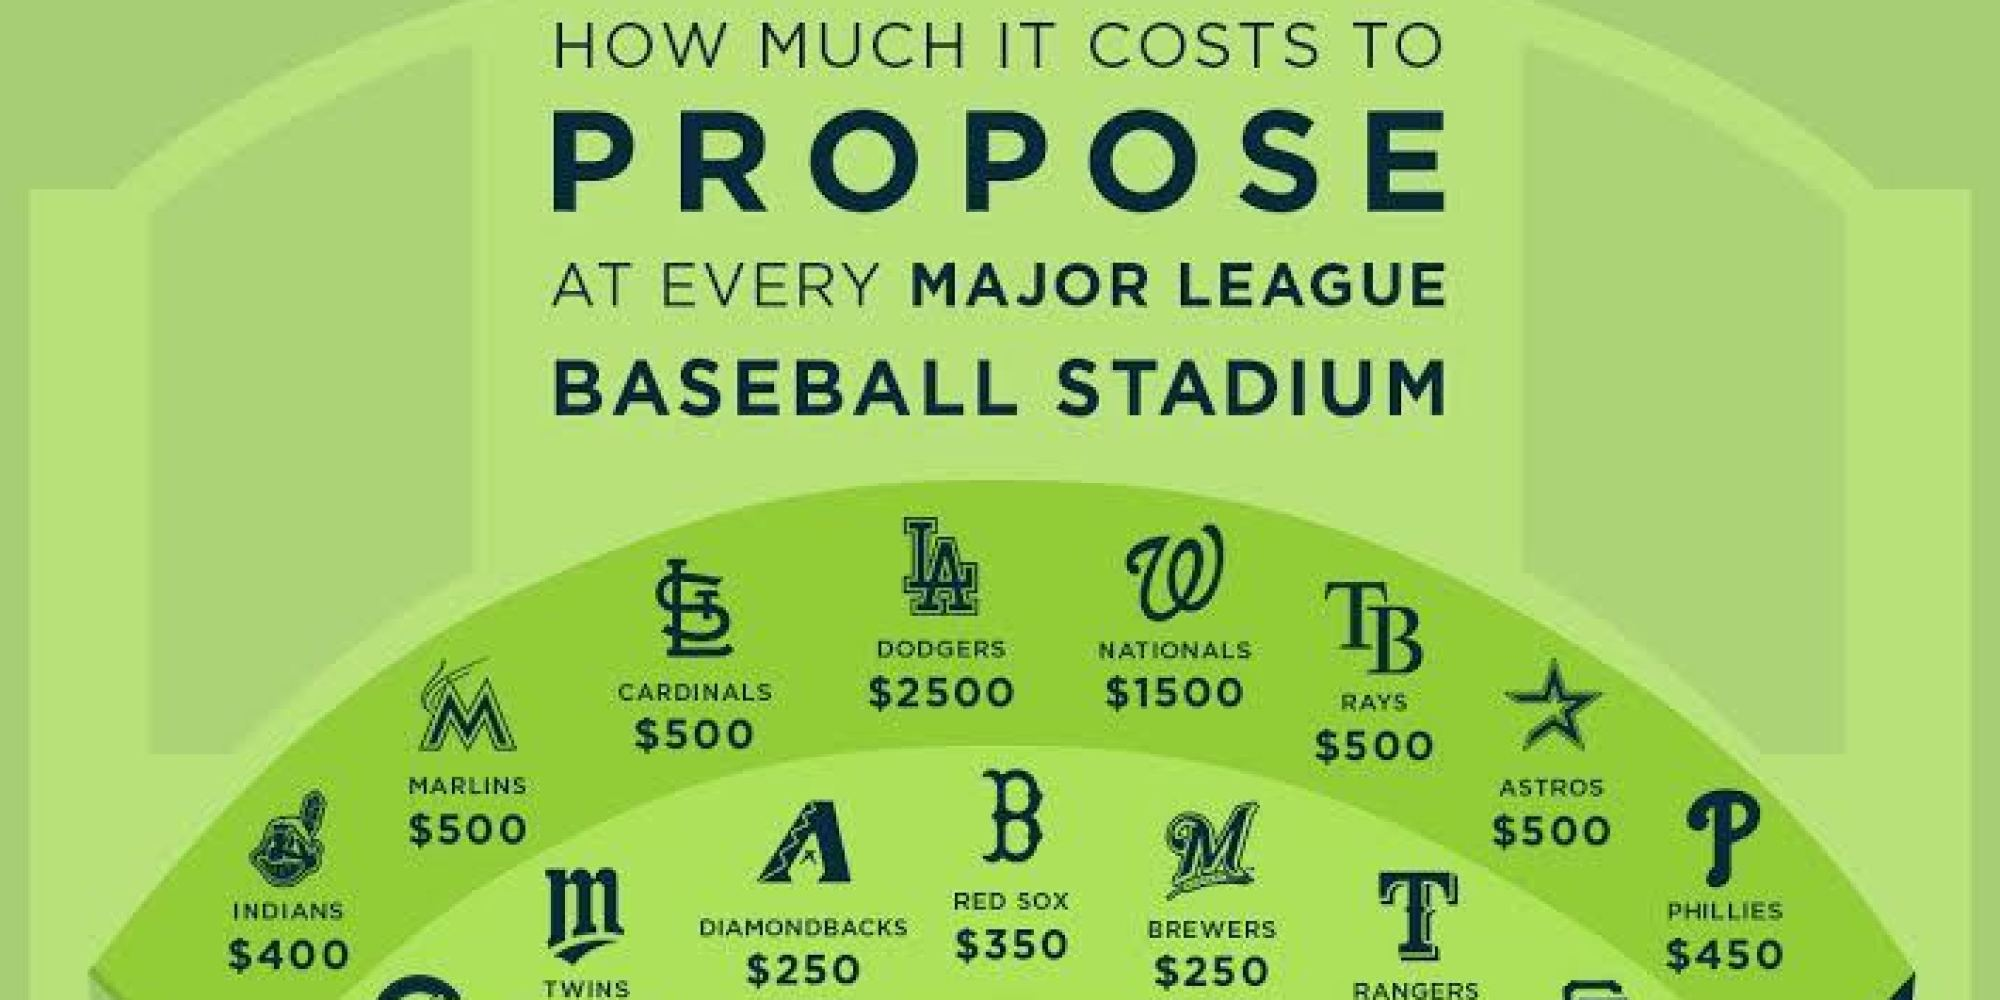 pm 598 rfp baseball field Cubs charities diamond project  proposals must be received by 5:00 pm central time  resurface a grass baseball field or install new synthetic or sports turf .